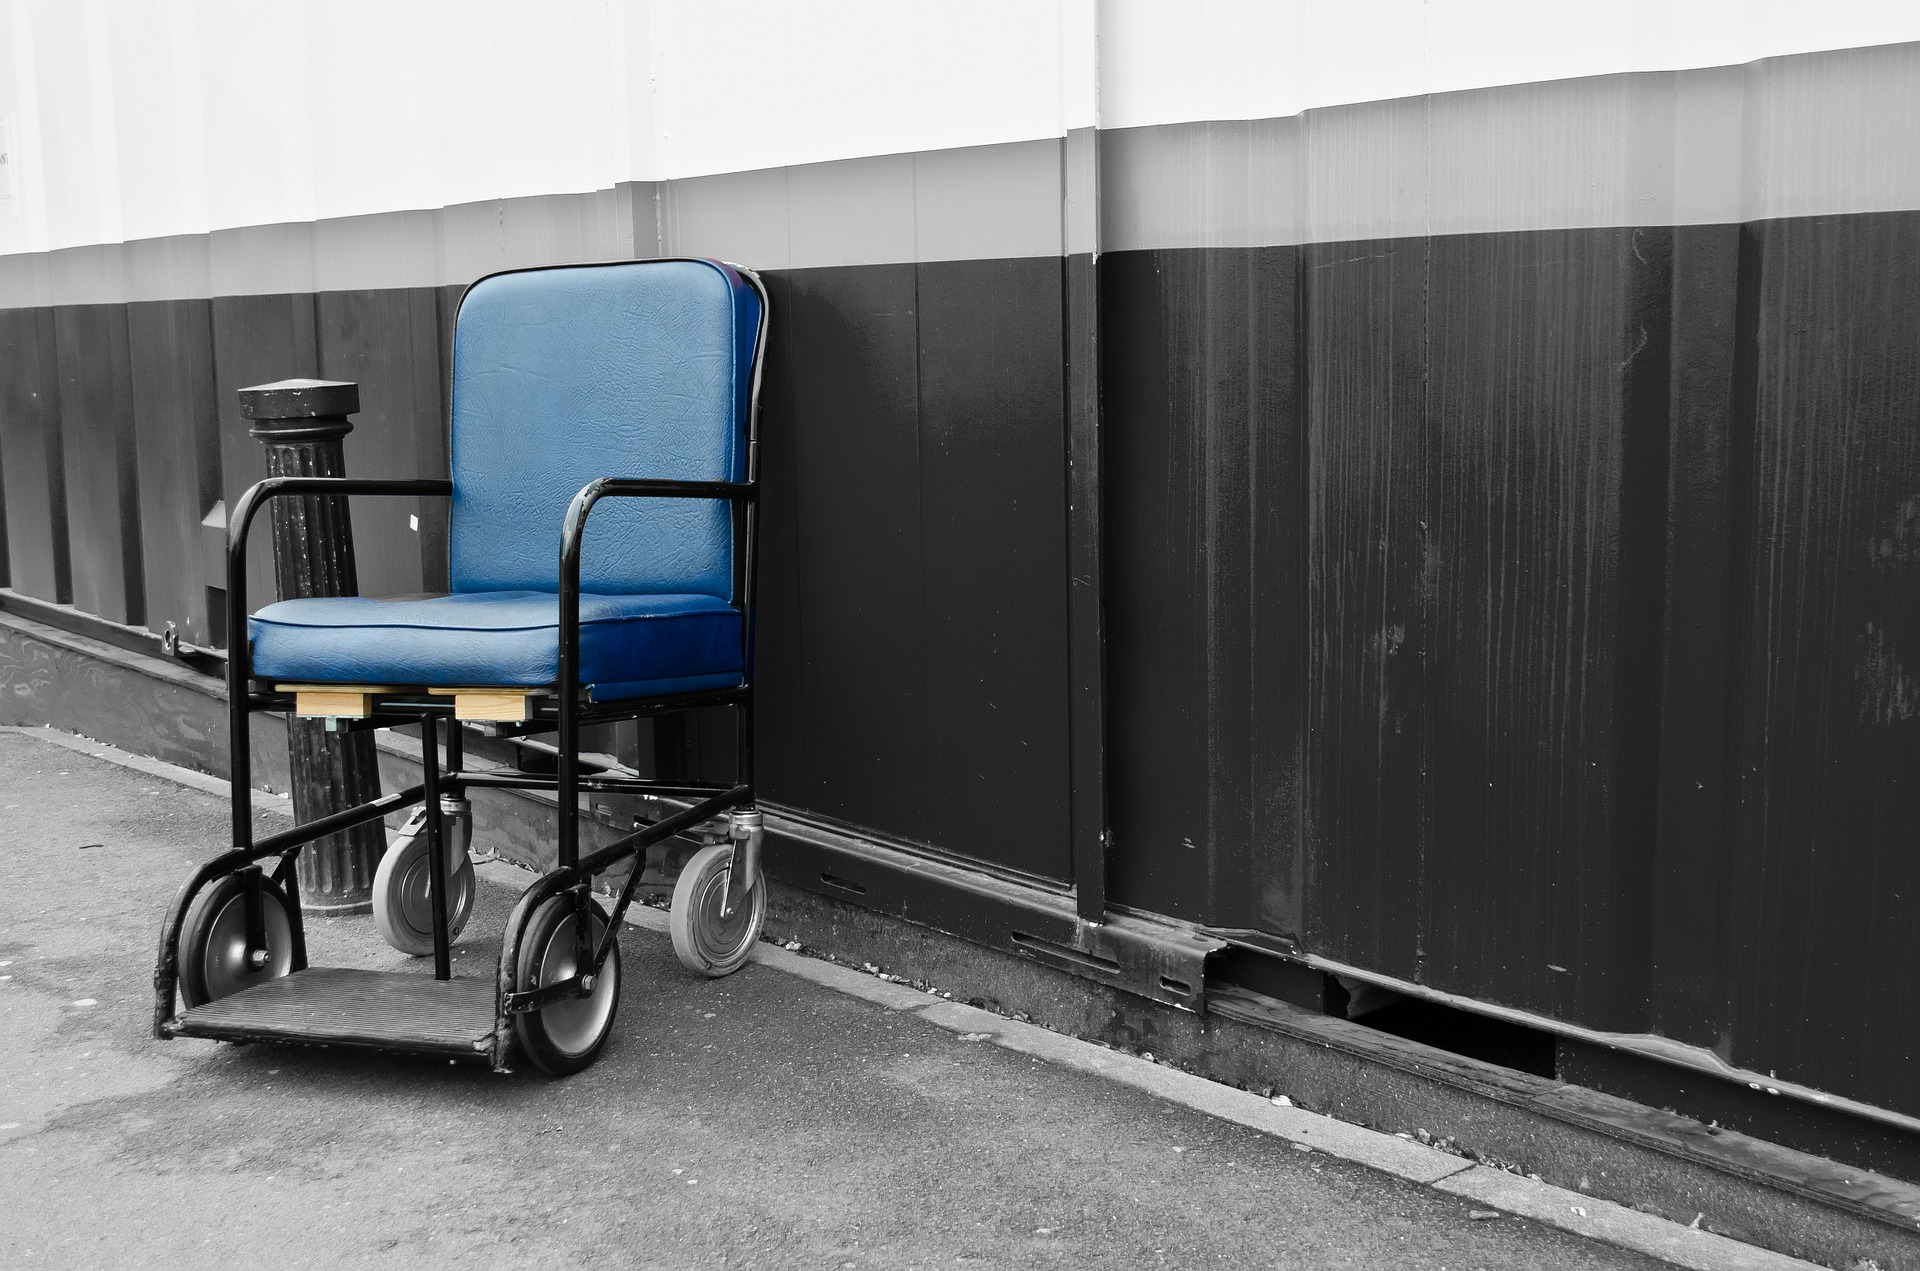 How To Improve The NHS Crisis And Accessibility Of Hospitals For Disabled People